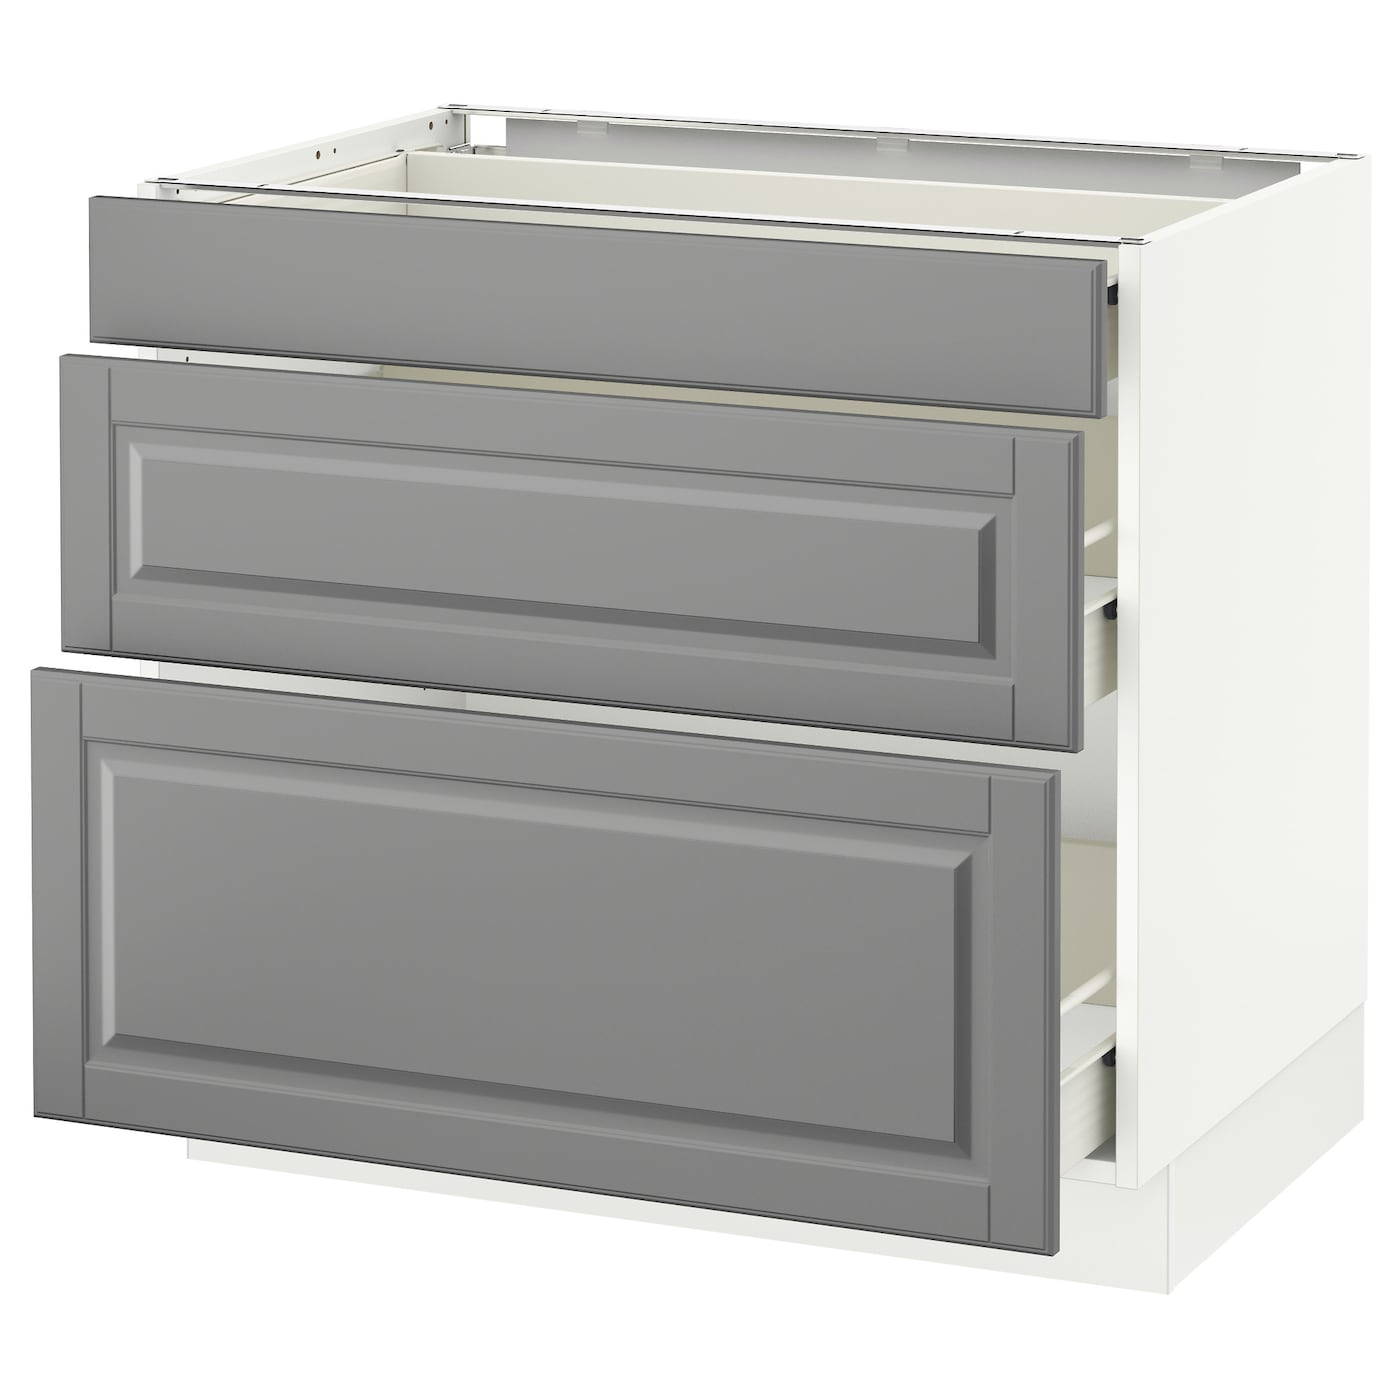 Picture of: Sektion Base Cabinet With 3 Drawers White Forvara Bodbyn Gray 36x24x30 Ikea